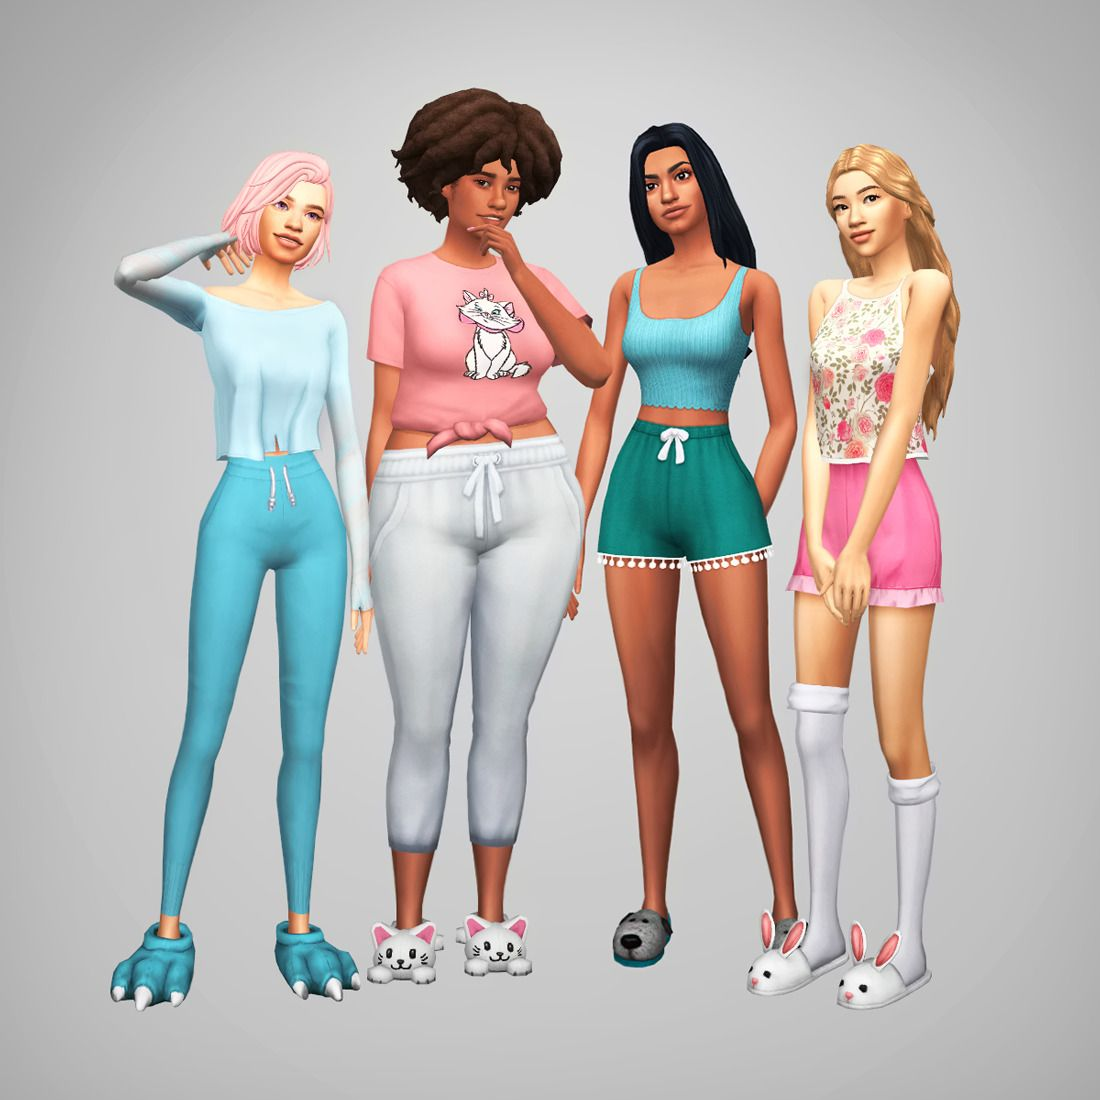 Sims superbabes sisters